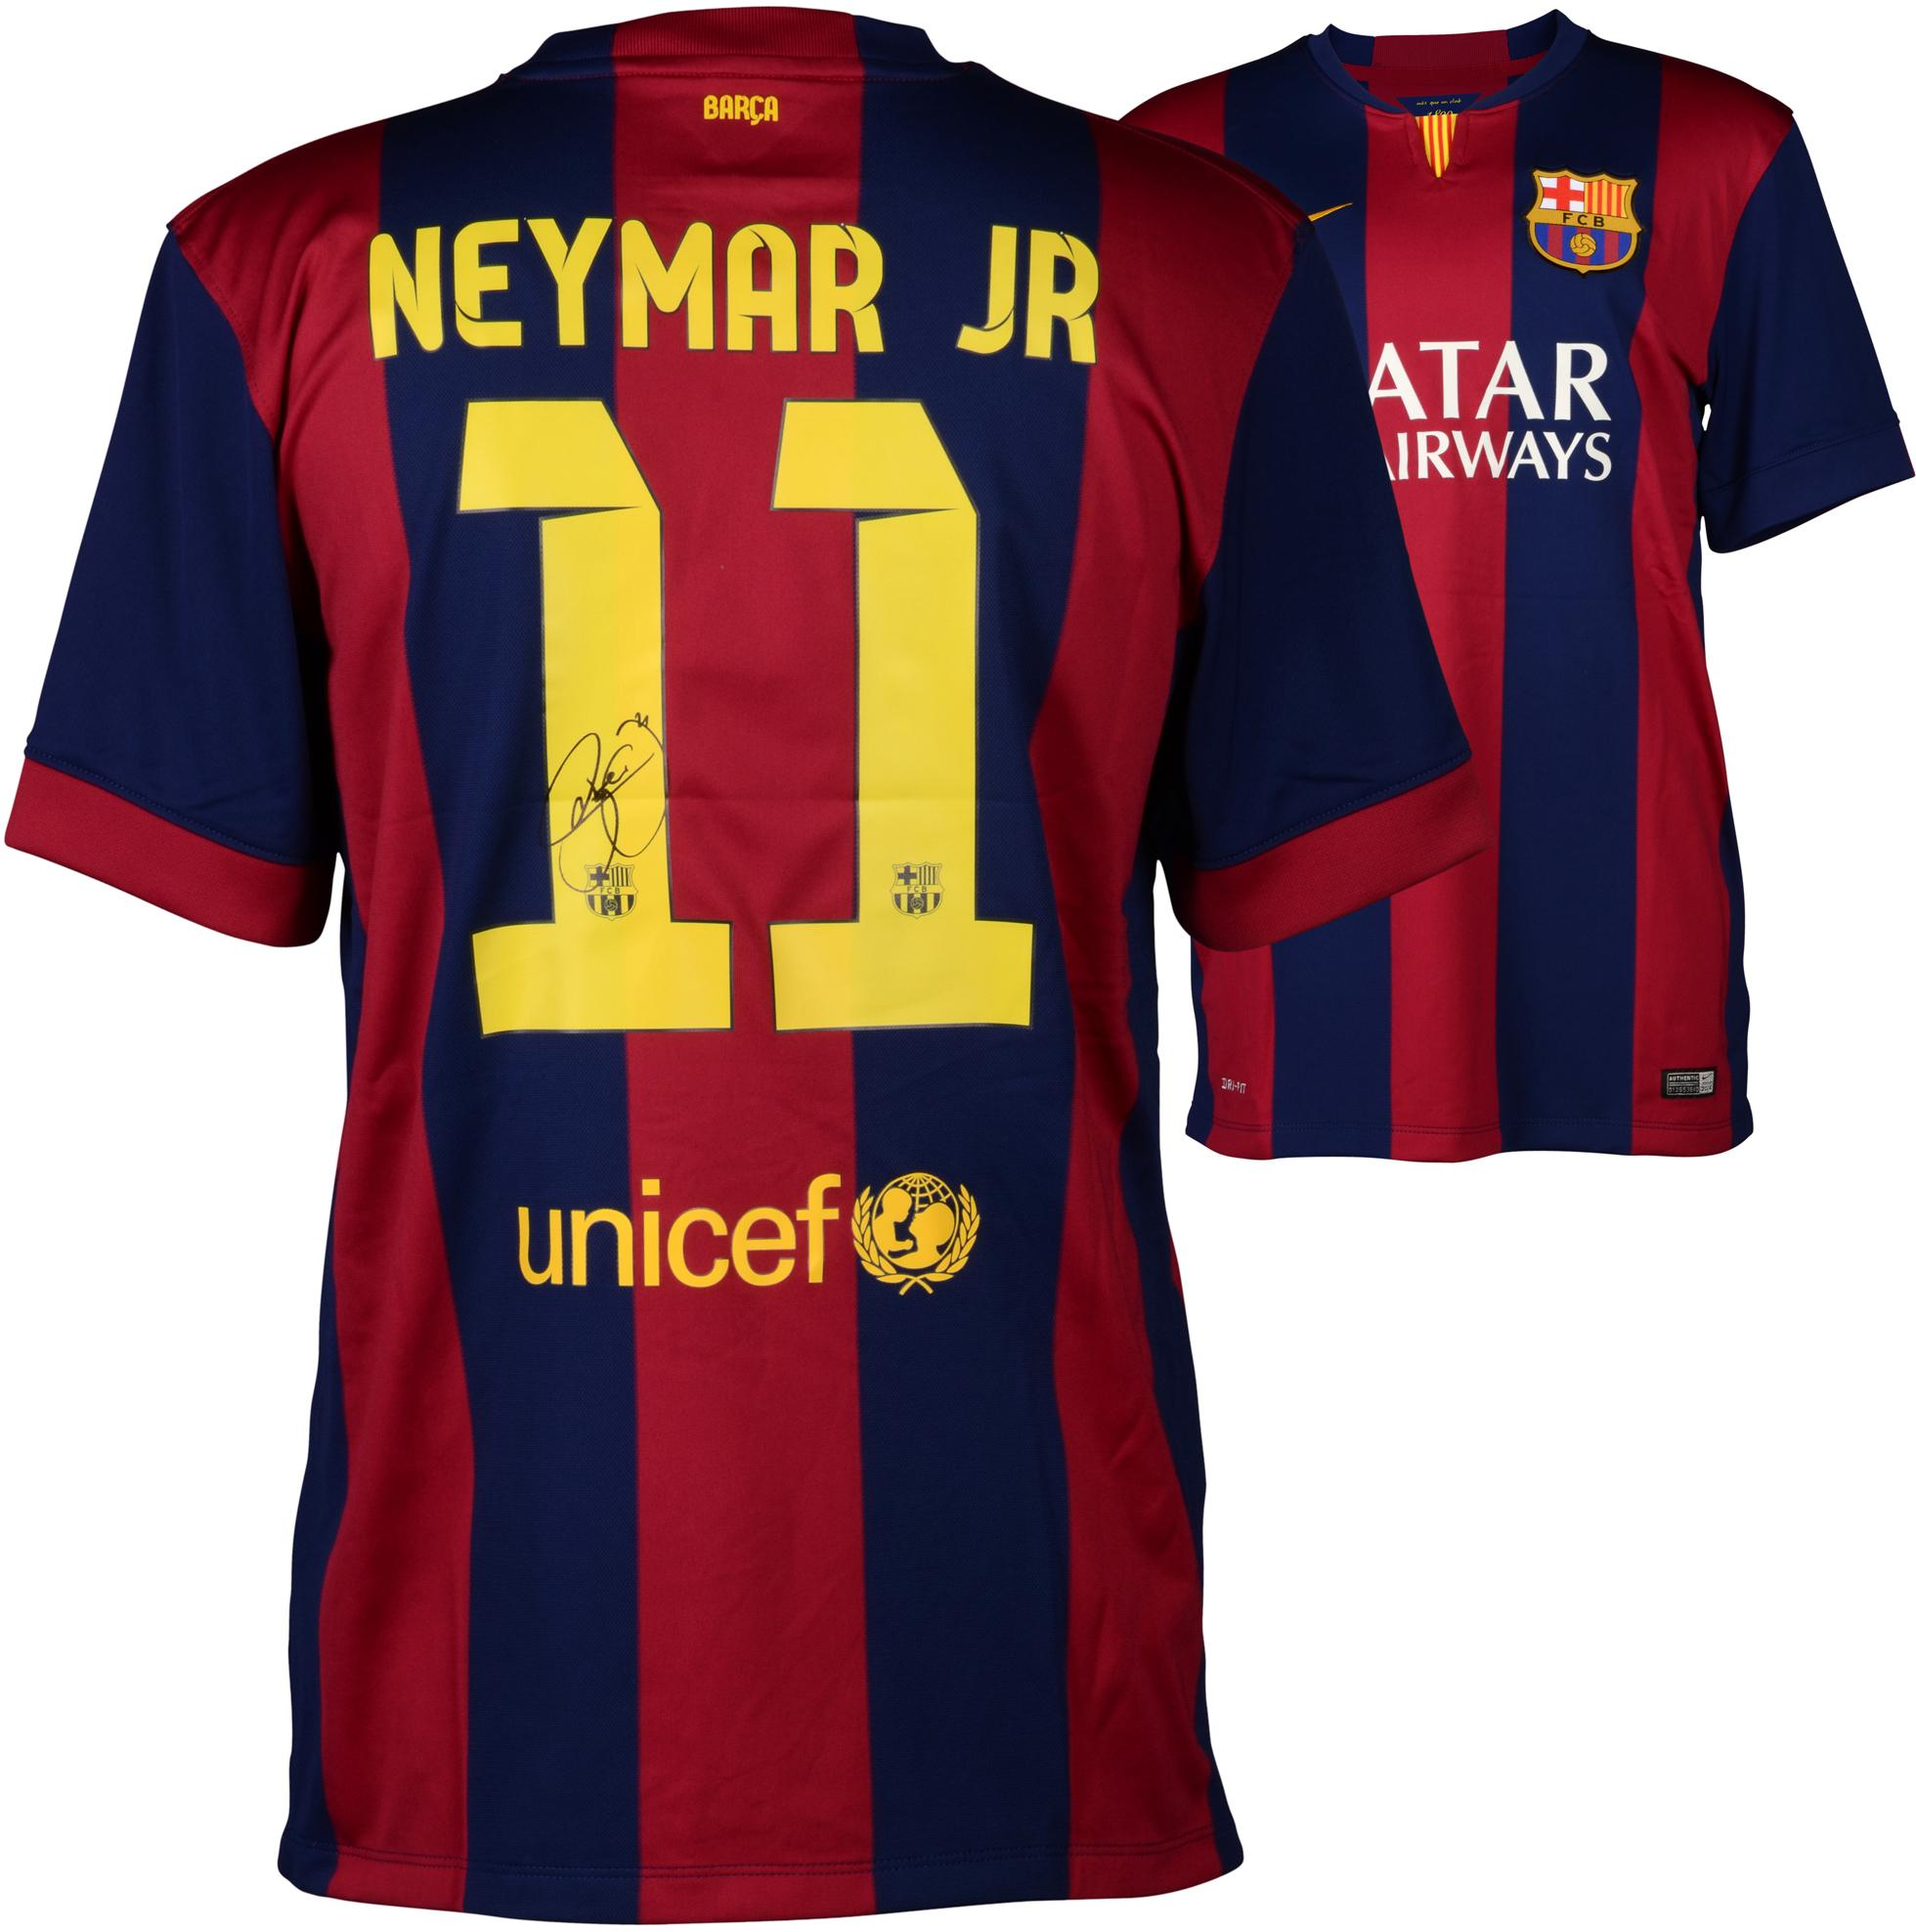 Neymar FC Barcelona Autographed Red & Blue Jersey - Fanatics Authentic Certified